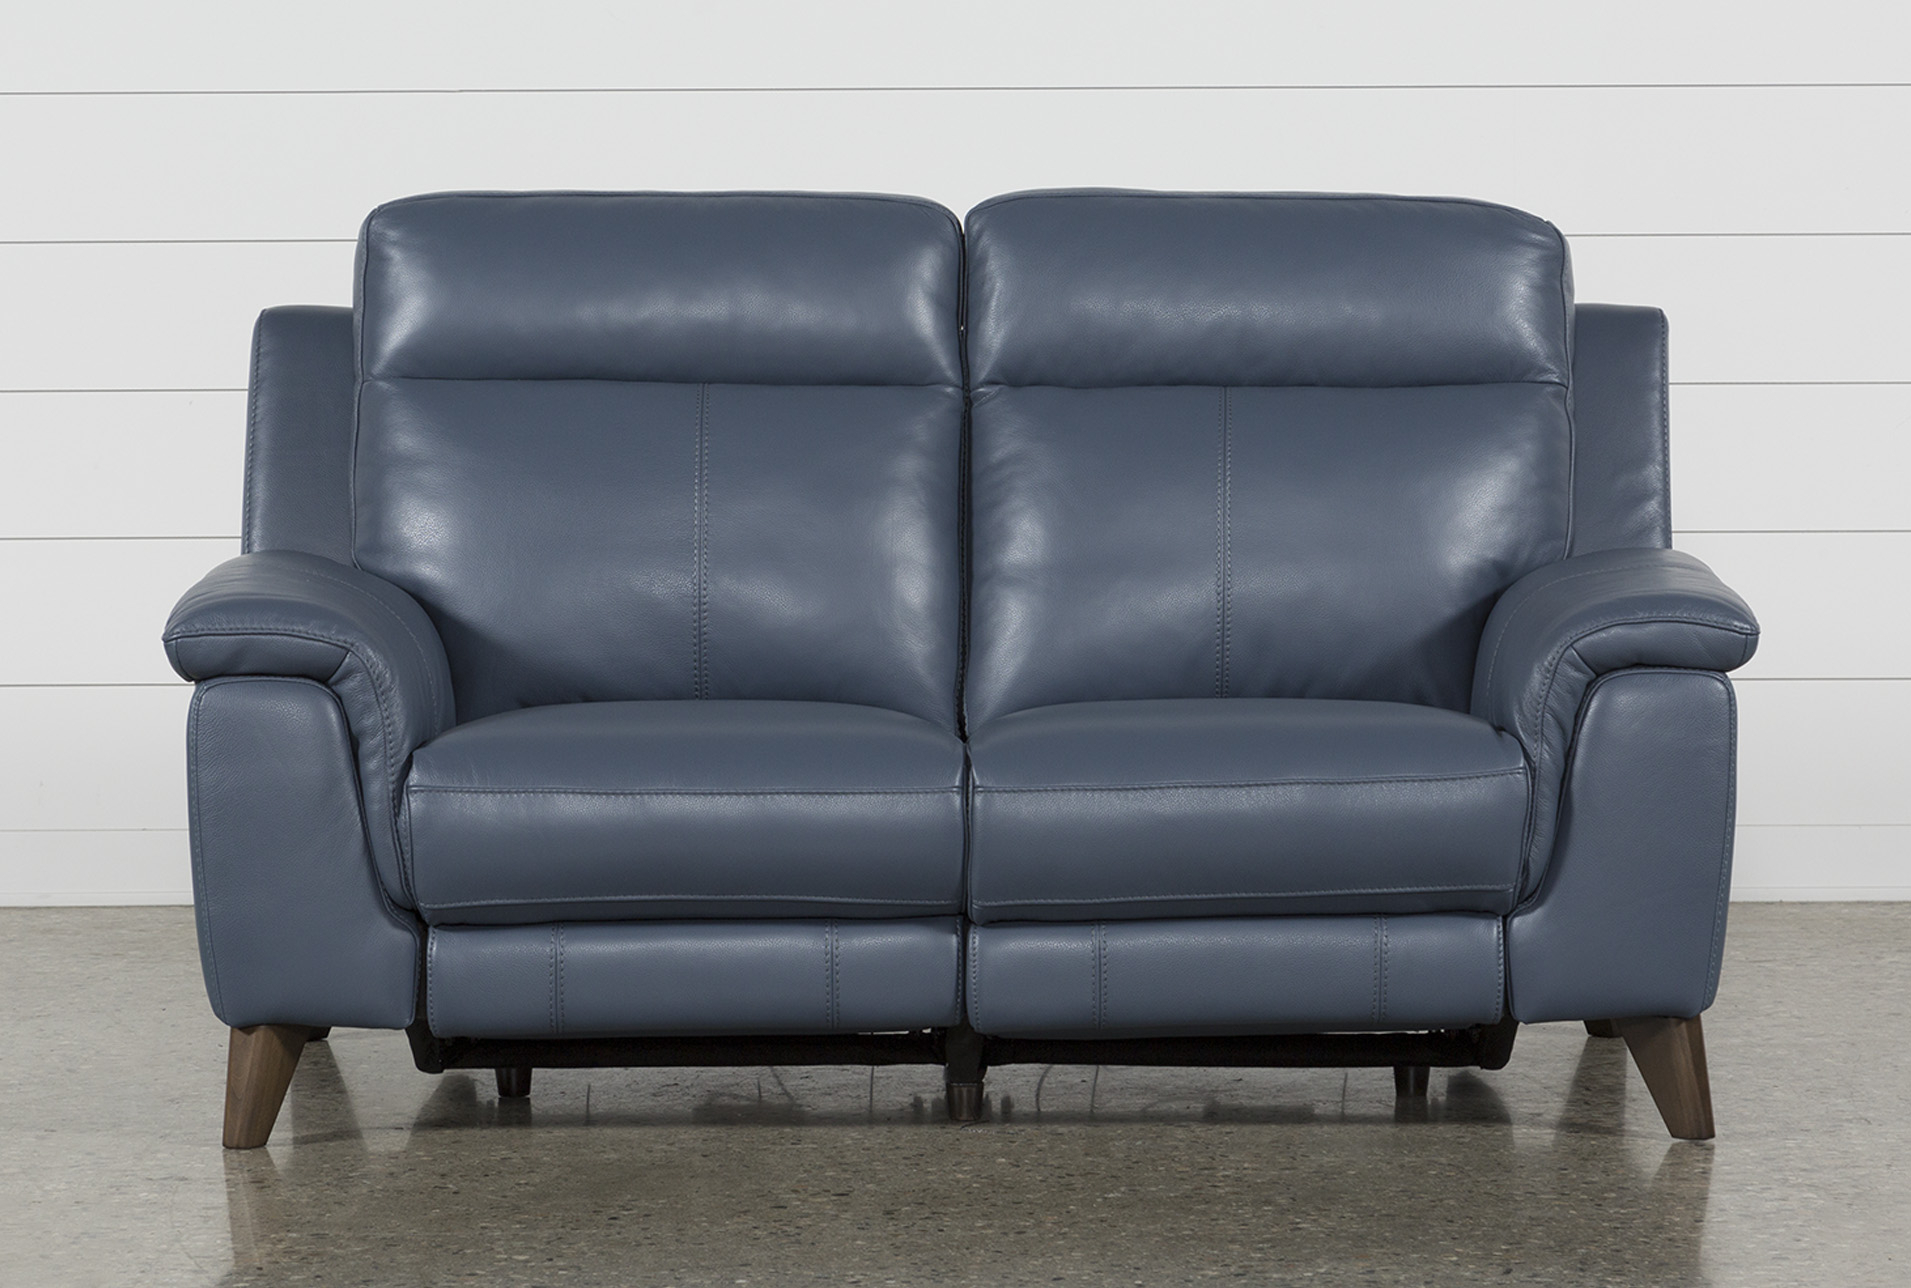 Moana Blue Leather Dual Power Reclining Loveseat With Usb In 2018 With Moana Blue Leather Power Reclining Sofa Chairs With Usb (View 3 of 20)